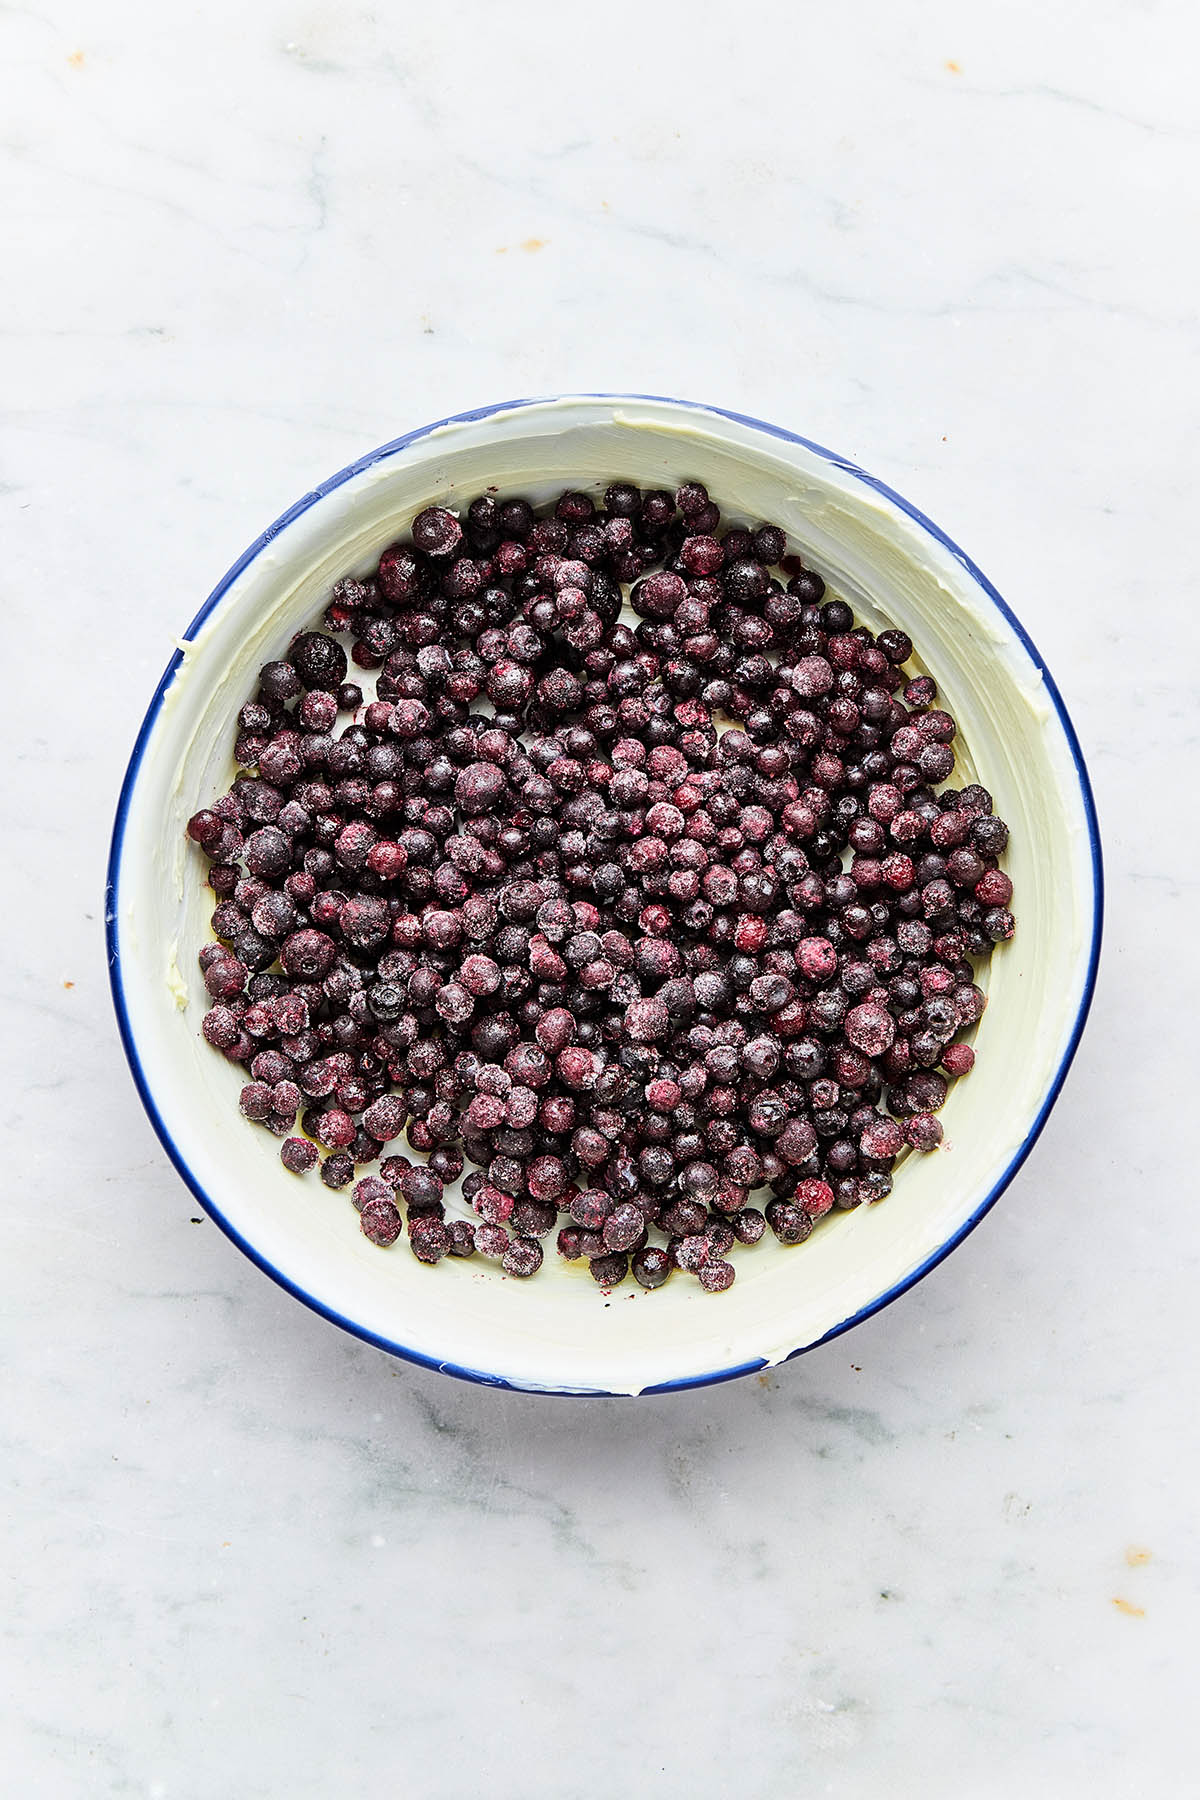 Frozen blueberries in a buttered baking dish.